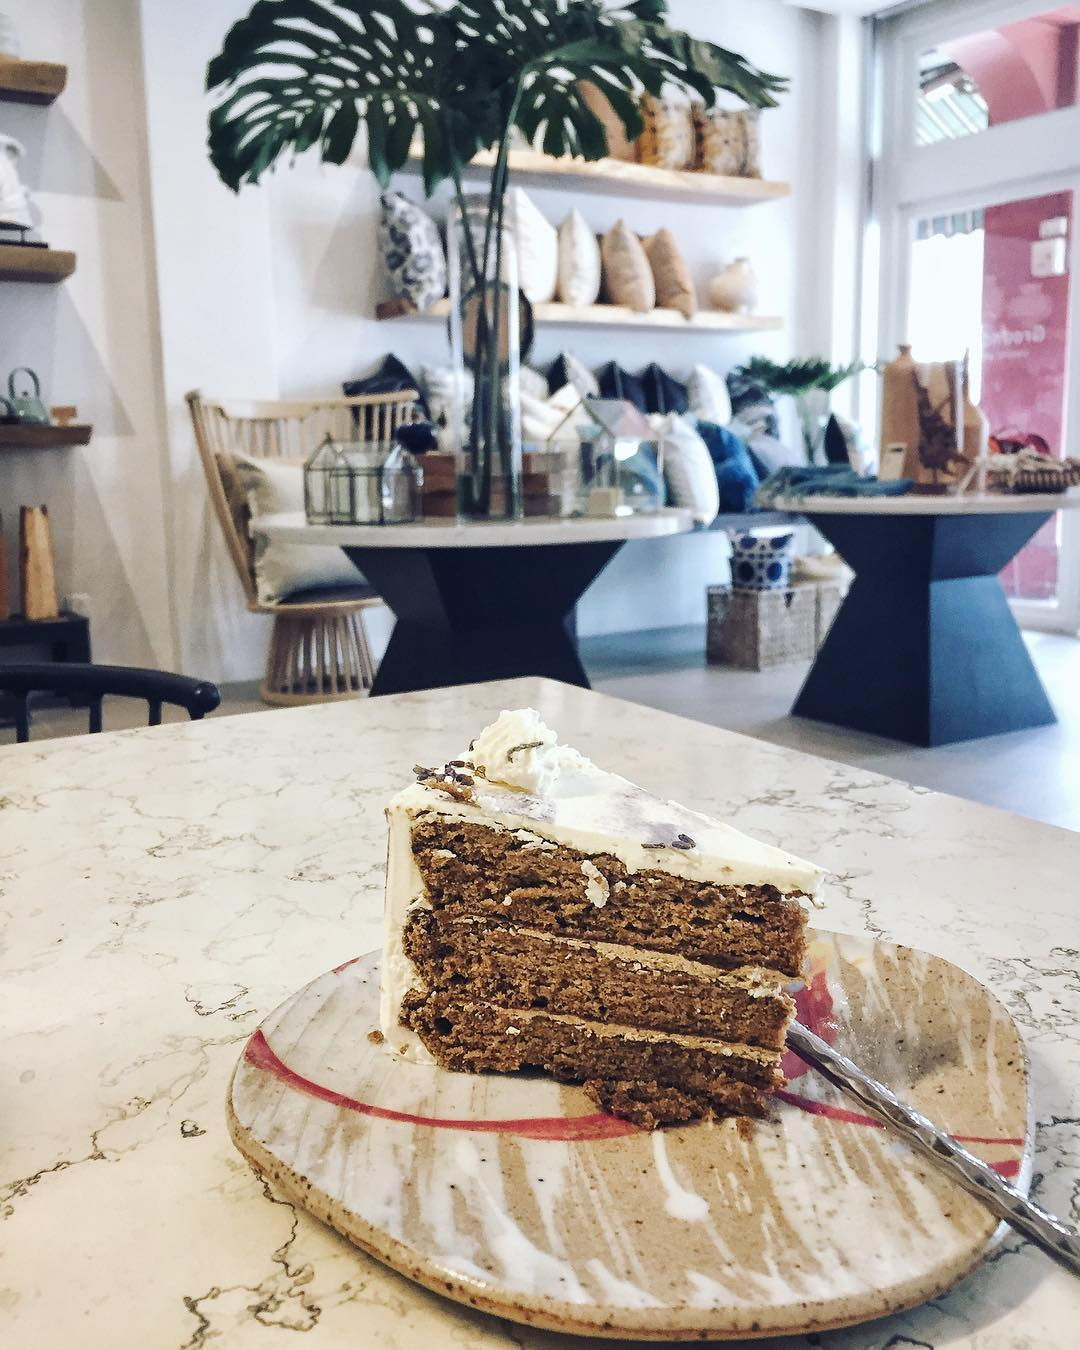 Savour home-baked cakes at Groundstory